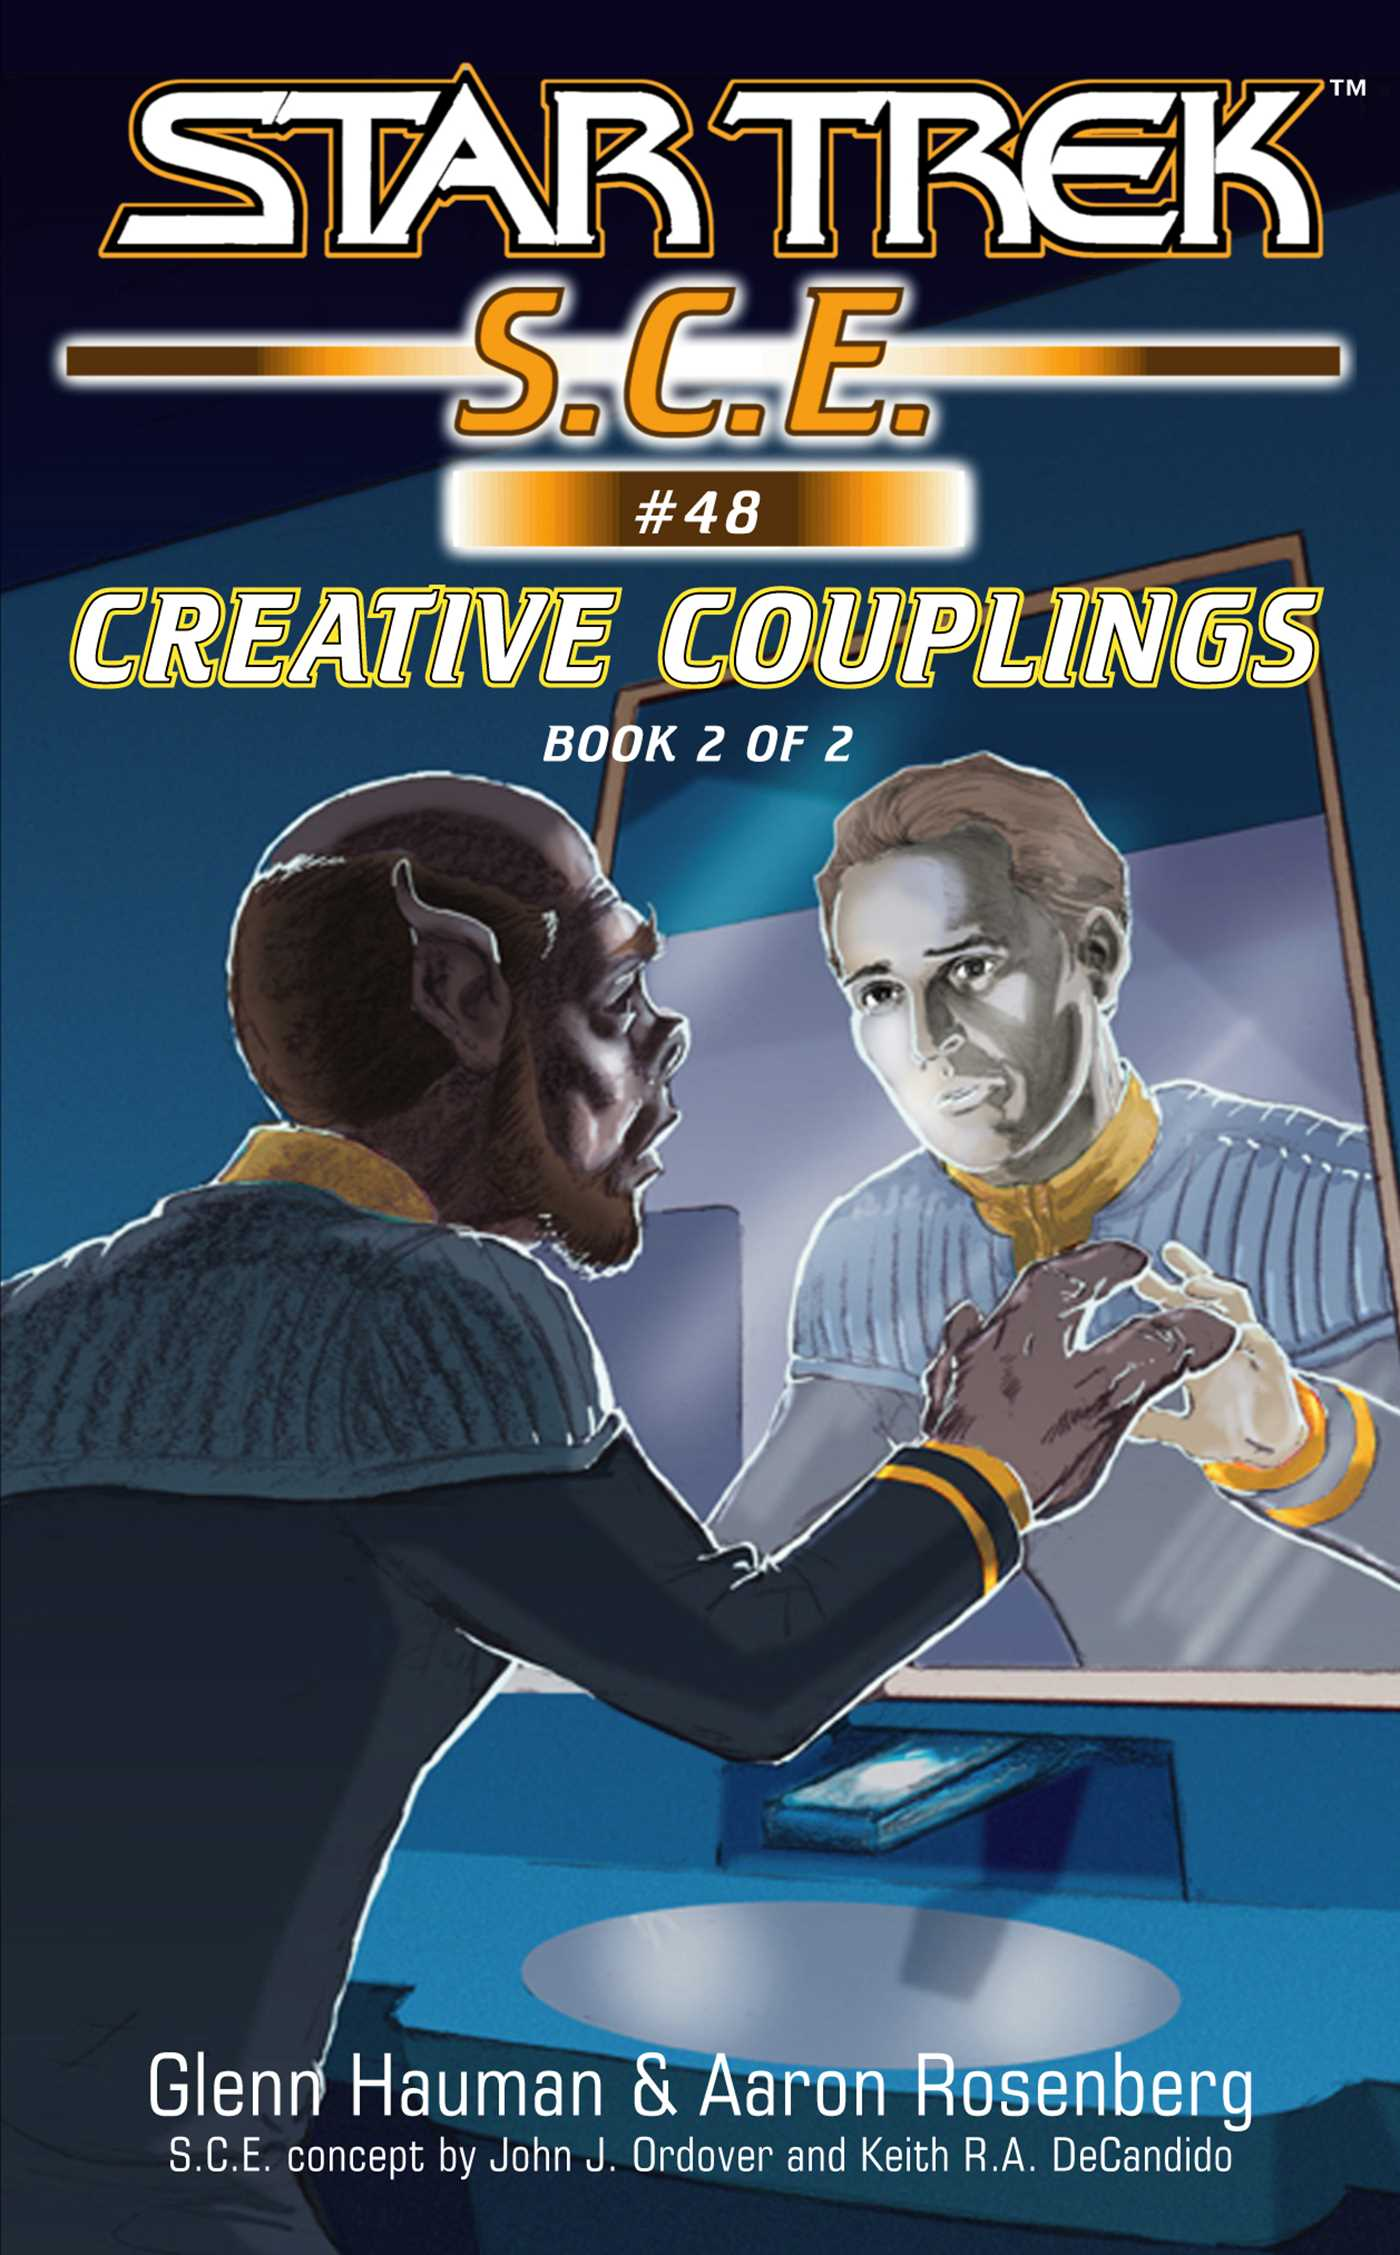 Star trek creative couplings book 2 9780743496896 hr